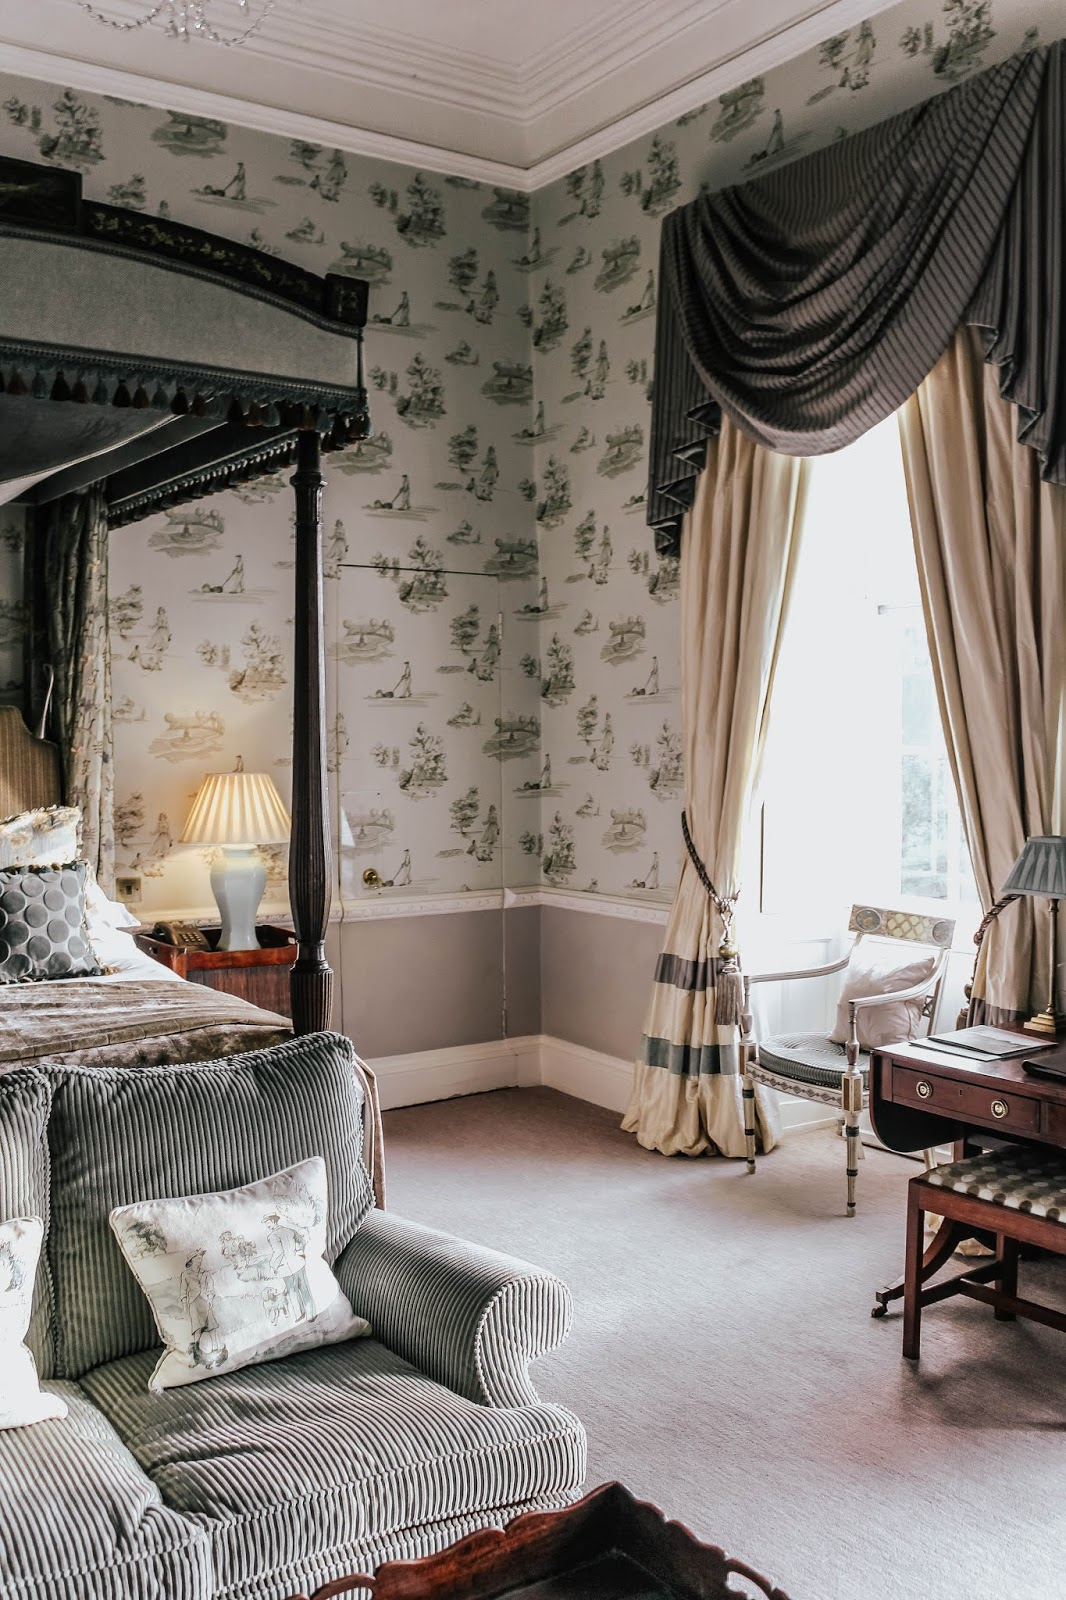 Ston Easton Park Hotel South East Four Poster Room